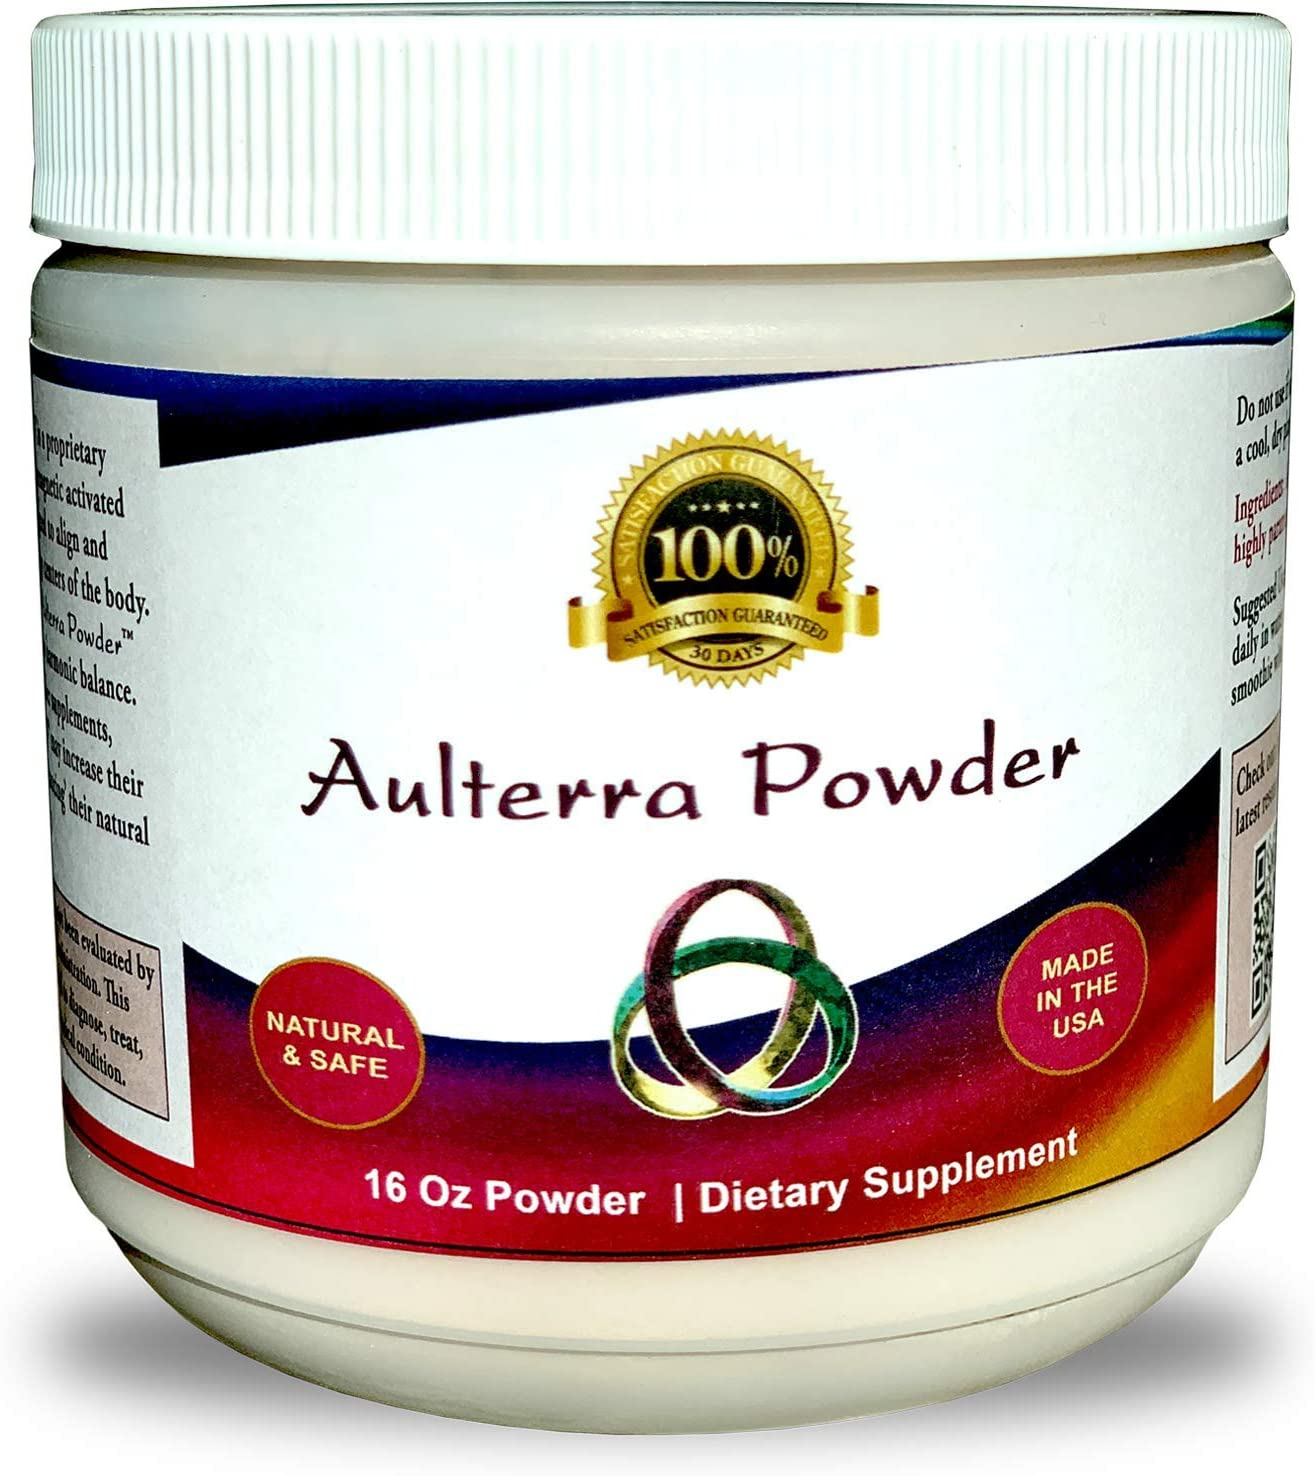 Aulterra Powder Supplement for EMF Protection, Proprietary Blend of Paramagnetic Minerals Neutralizes Harmful EMF (1lb Jar)